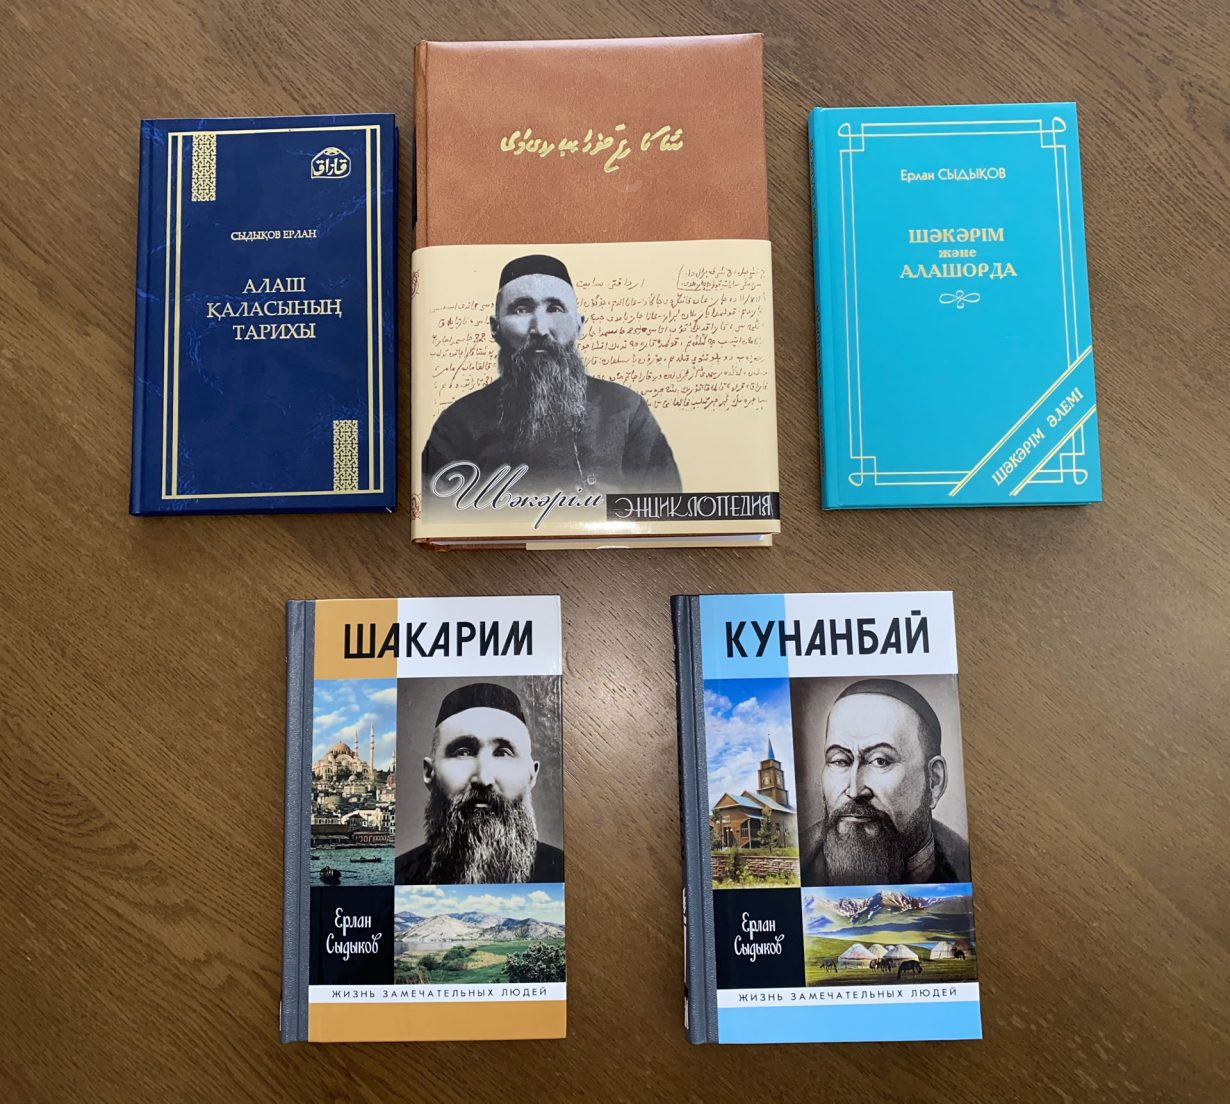 Cooperation with Eurasian National University, Kazakhstan; IRCICA's publications on the history of Islamic scholarship in Kazakhstan